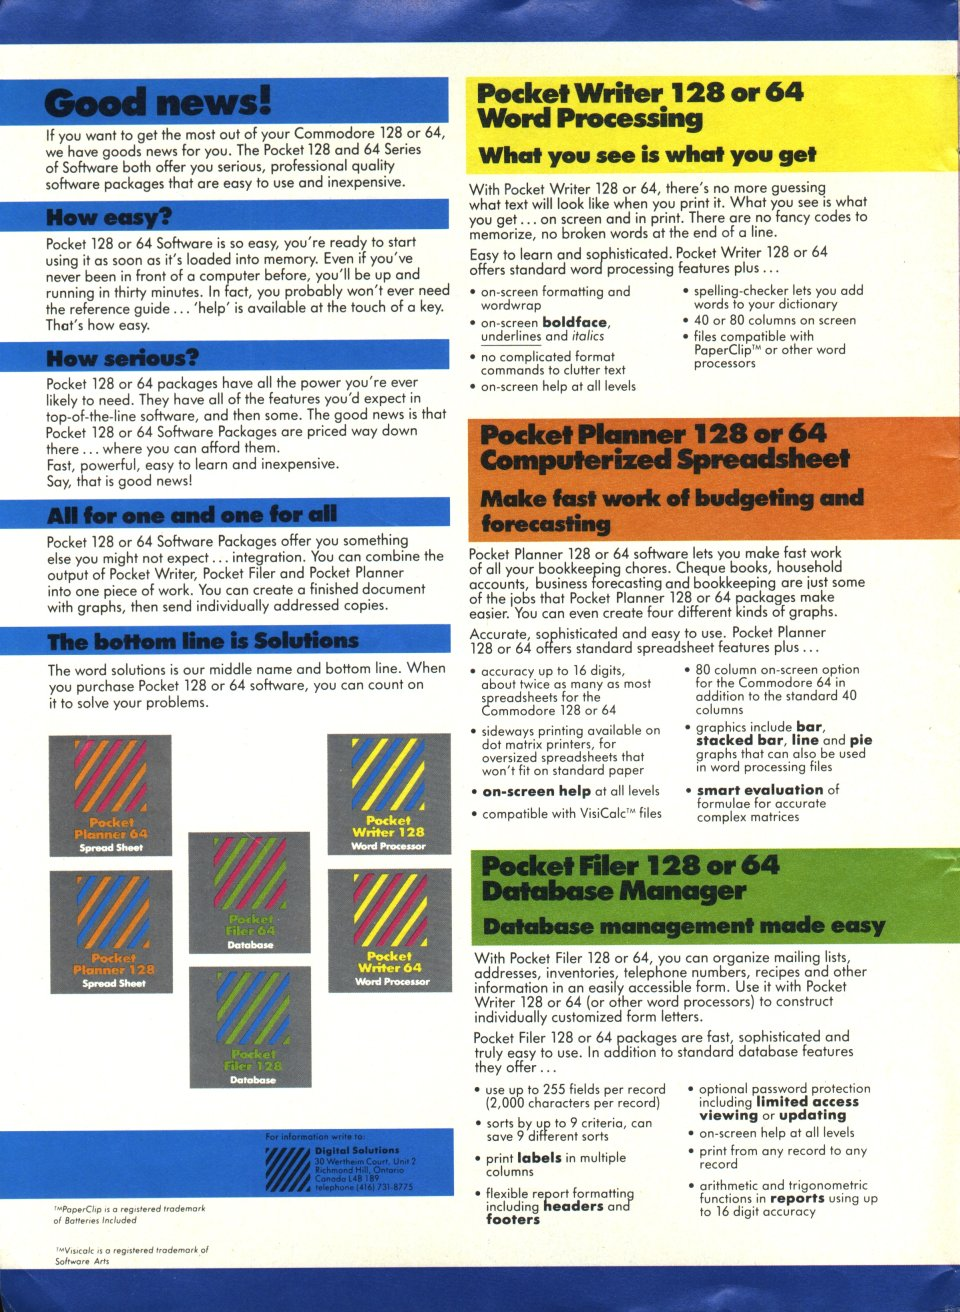 [Advertisement: Pocket Writer, Pocket Planner and Pocket Filer for the Commodore 128 and 64 (Digital Solutions Ltd.)]